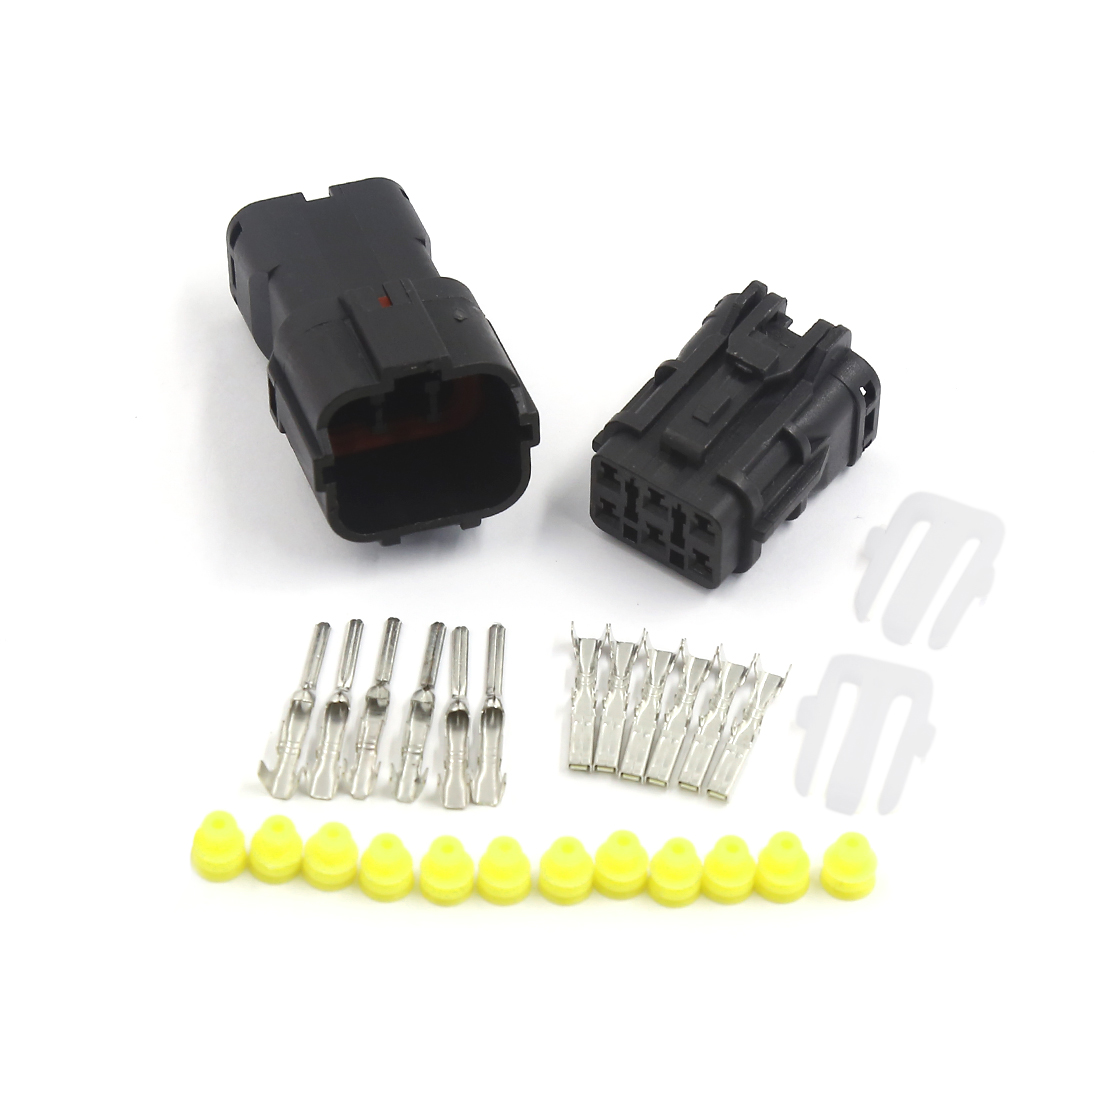 1 Kit 6 Pin Way Waterproof 1.8mm Wire Connector Socket Car Sealed Electrical Set